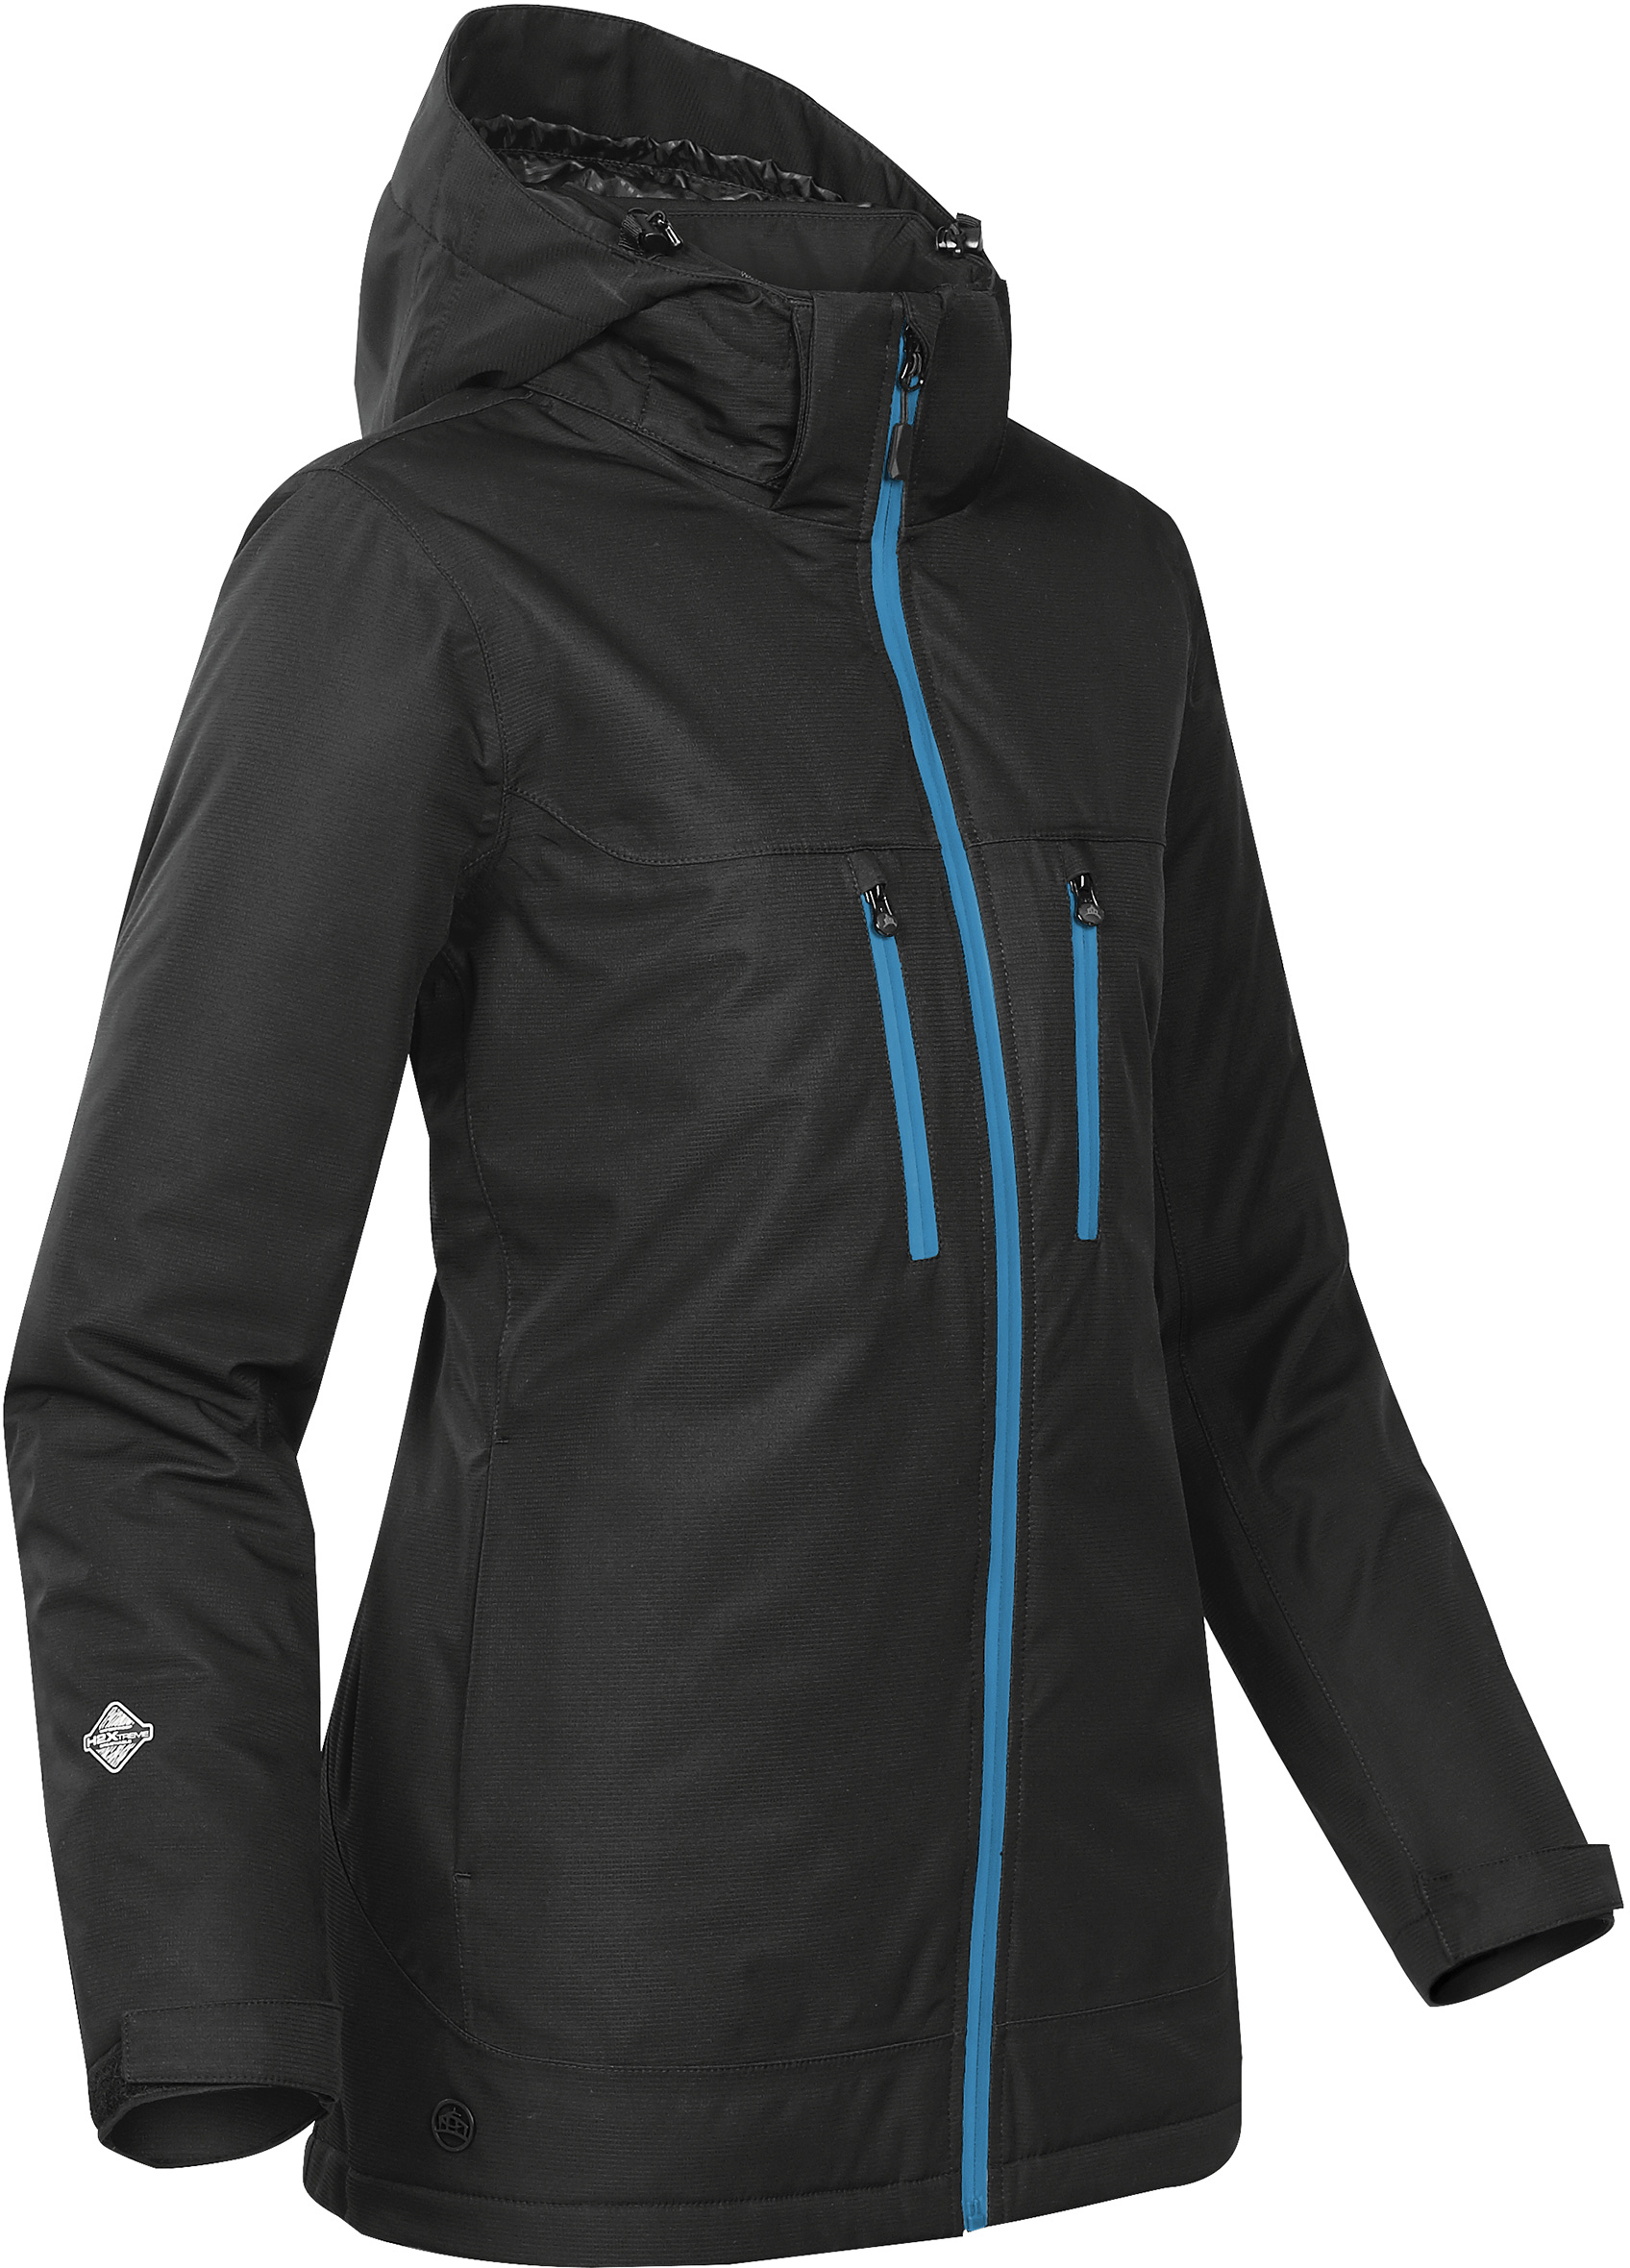 Stormtech EB-3W - Women's Snowburst Thermal Shell Jacket